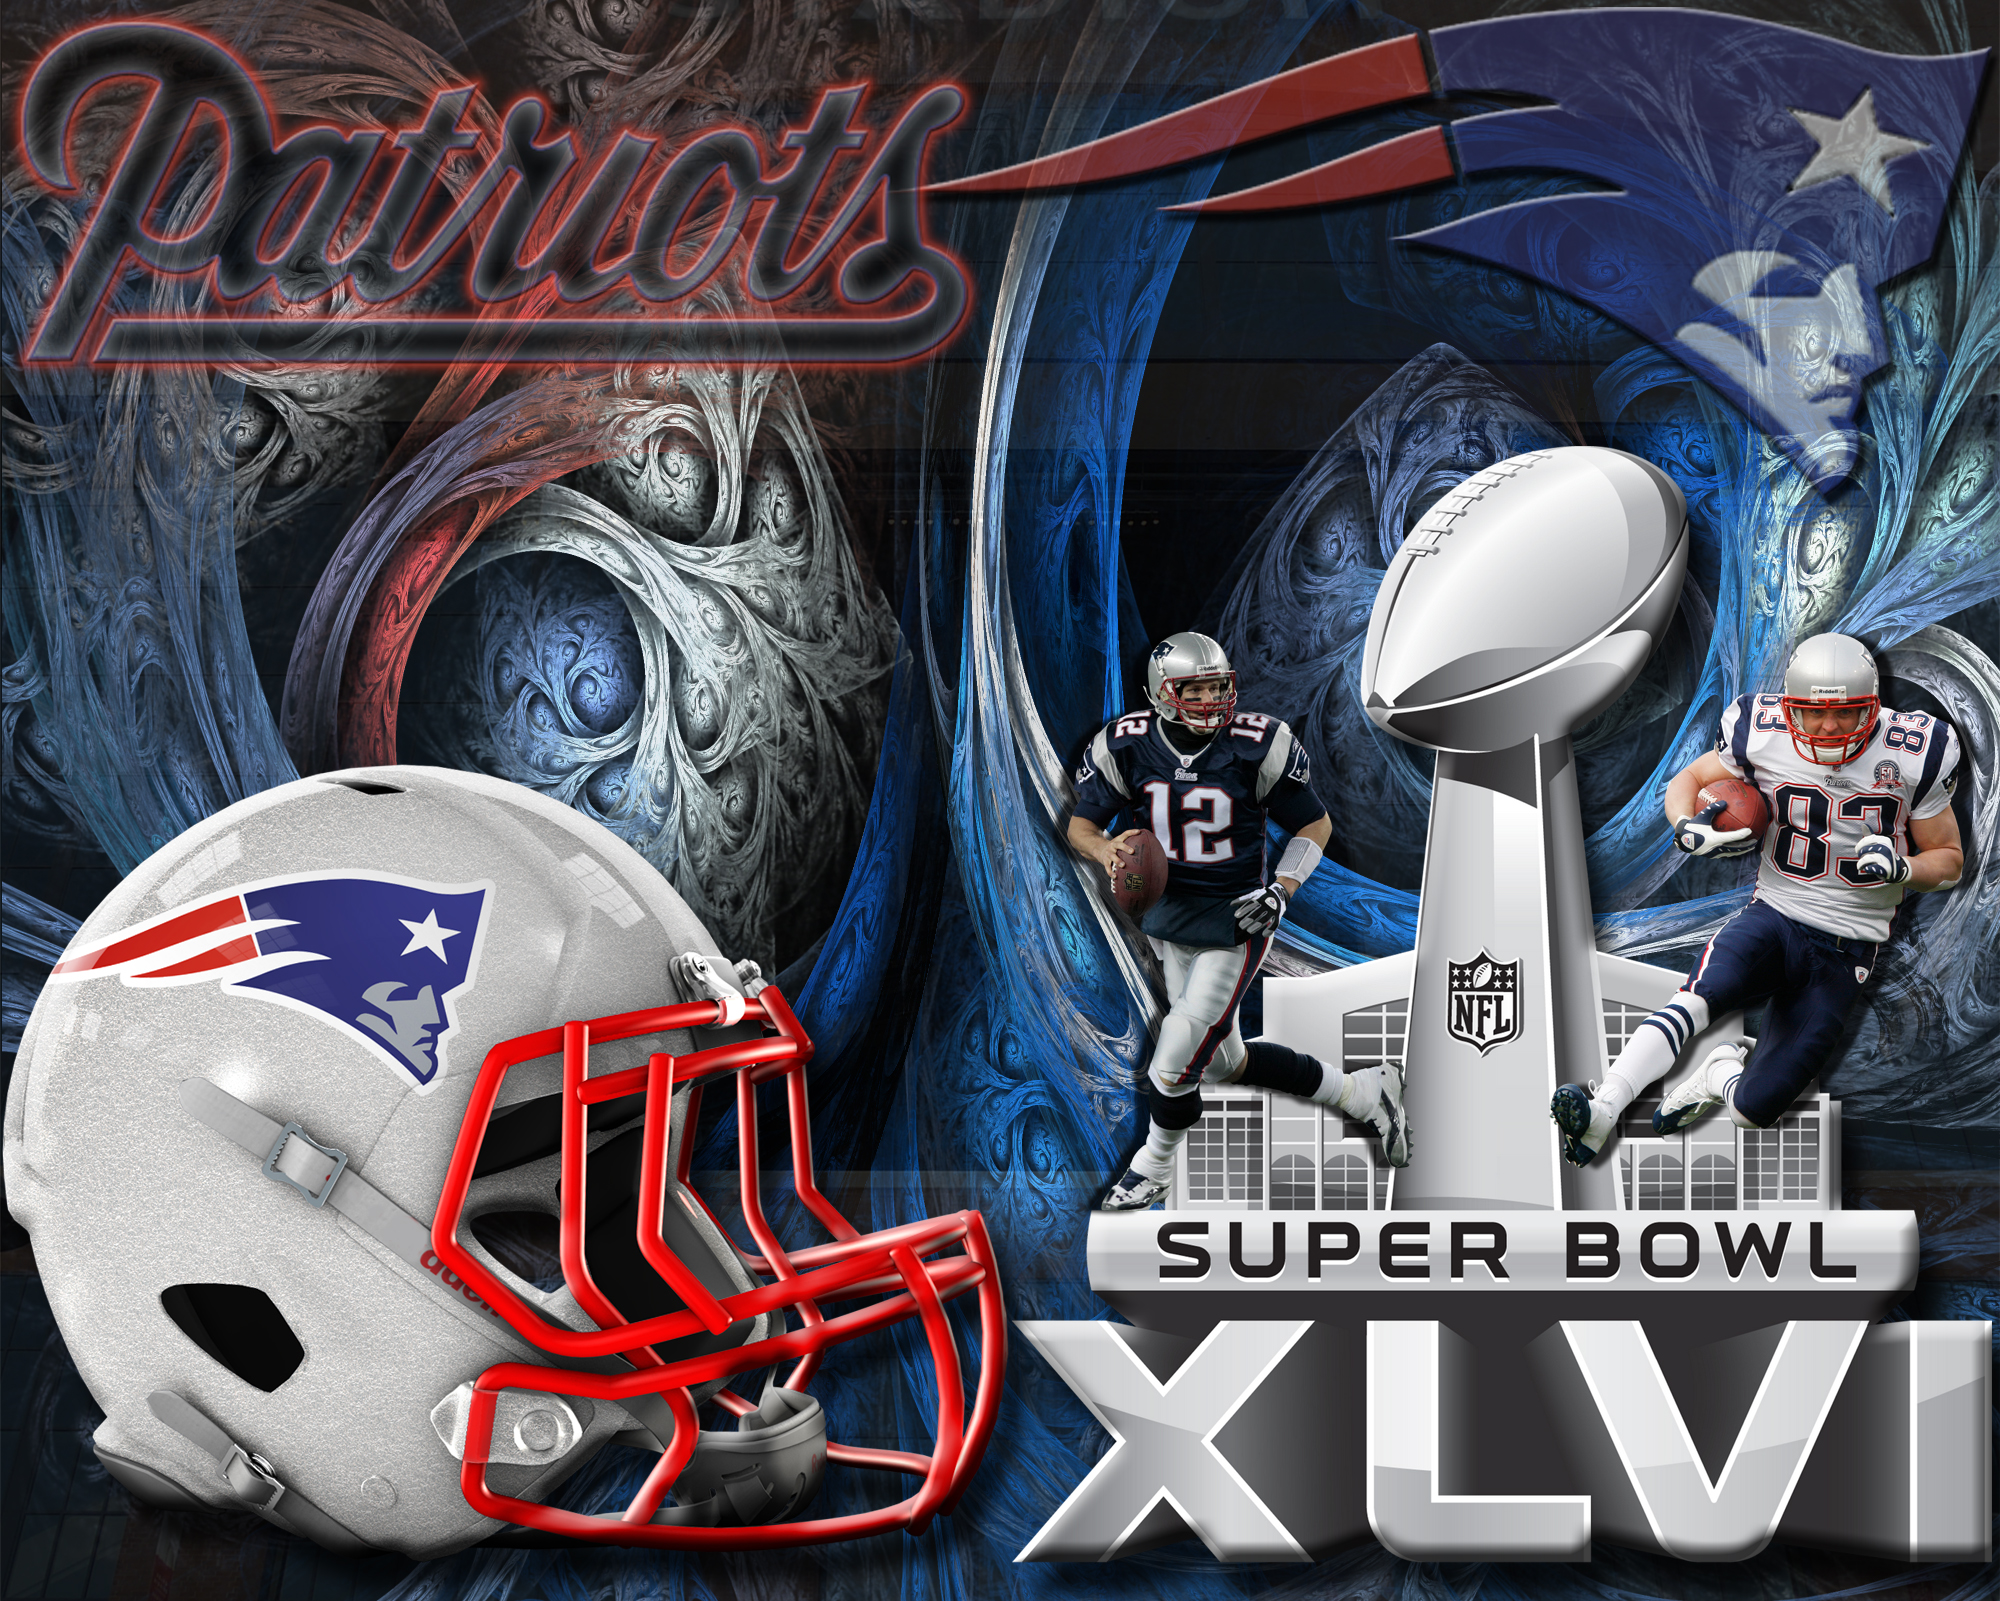 Wallpapers by wicked shadows new england patriots super bowl new england patriots super bowl wallpaper voltagebd Choice Image